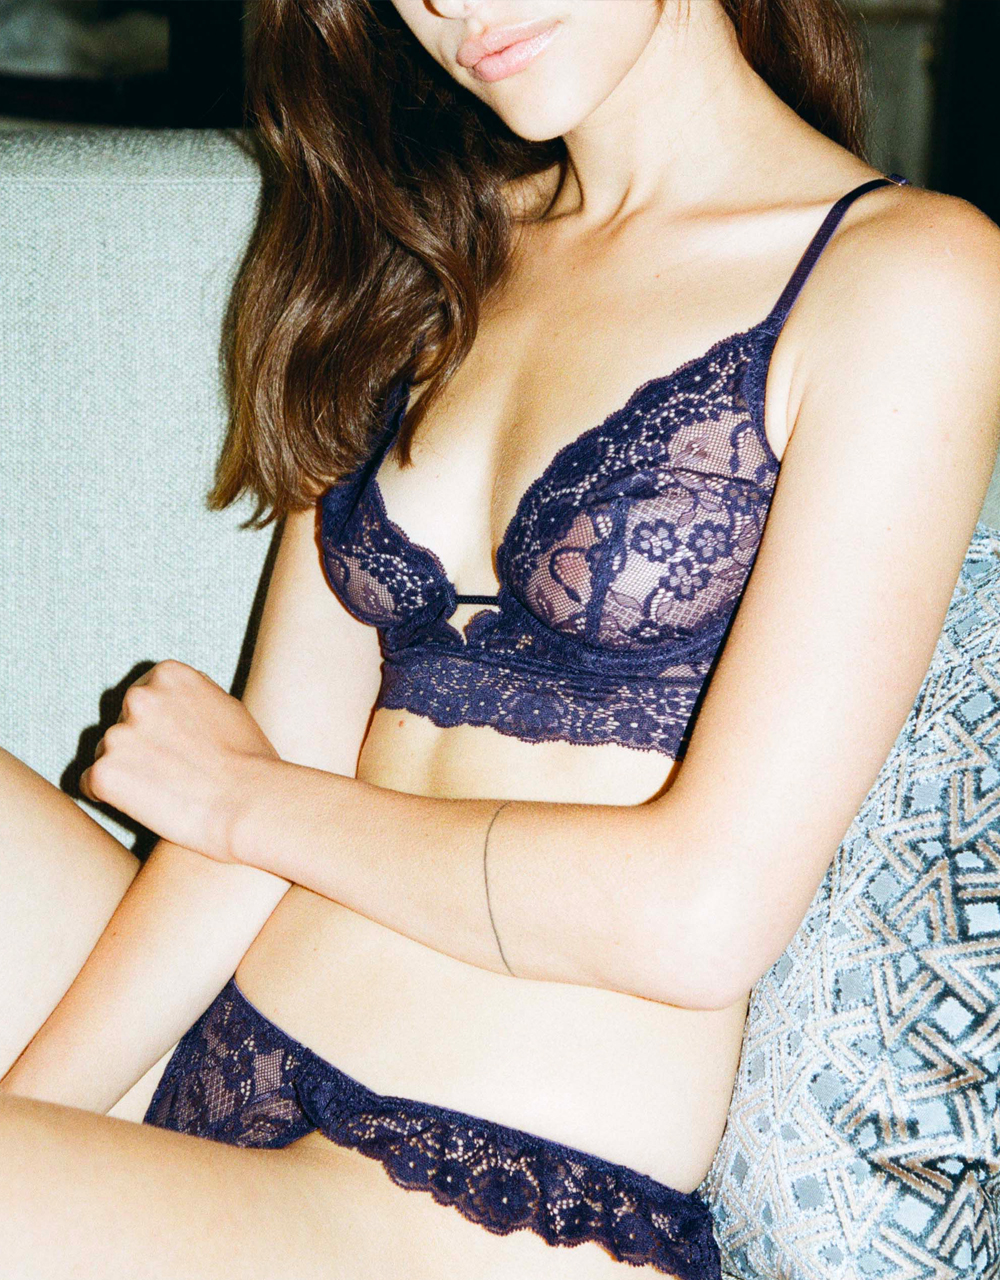 lingerie culotte midnight blue Birdie Midnight Blue 20 € Girls In Paris photo 3